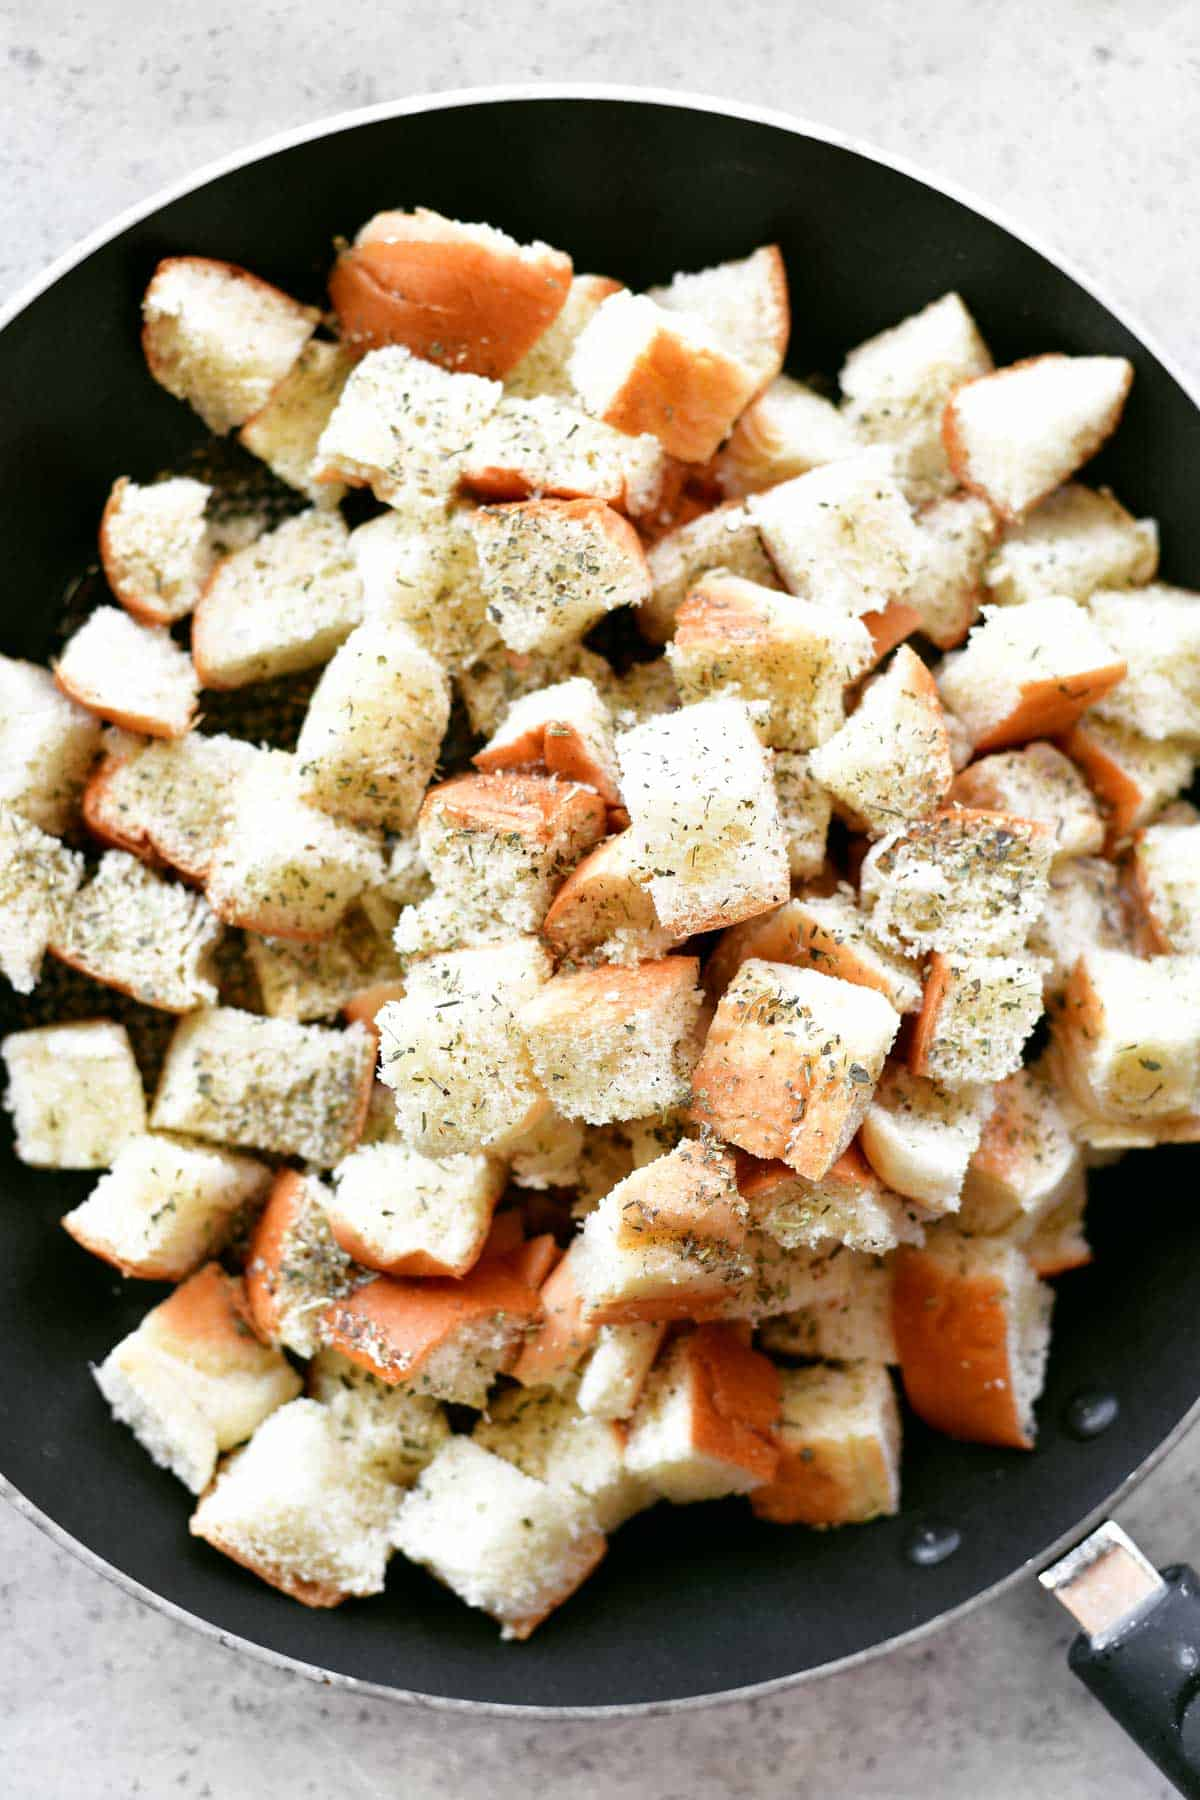 cubed bread with spices in skillet for croutons recipe